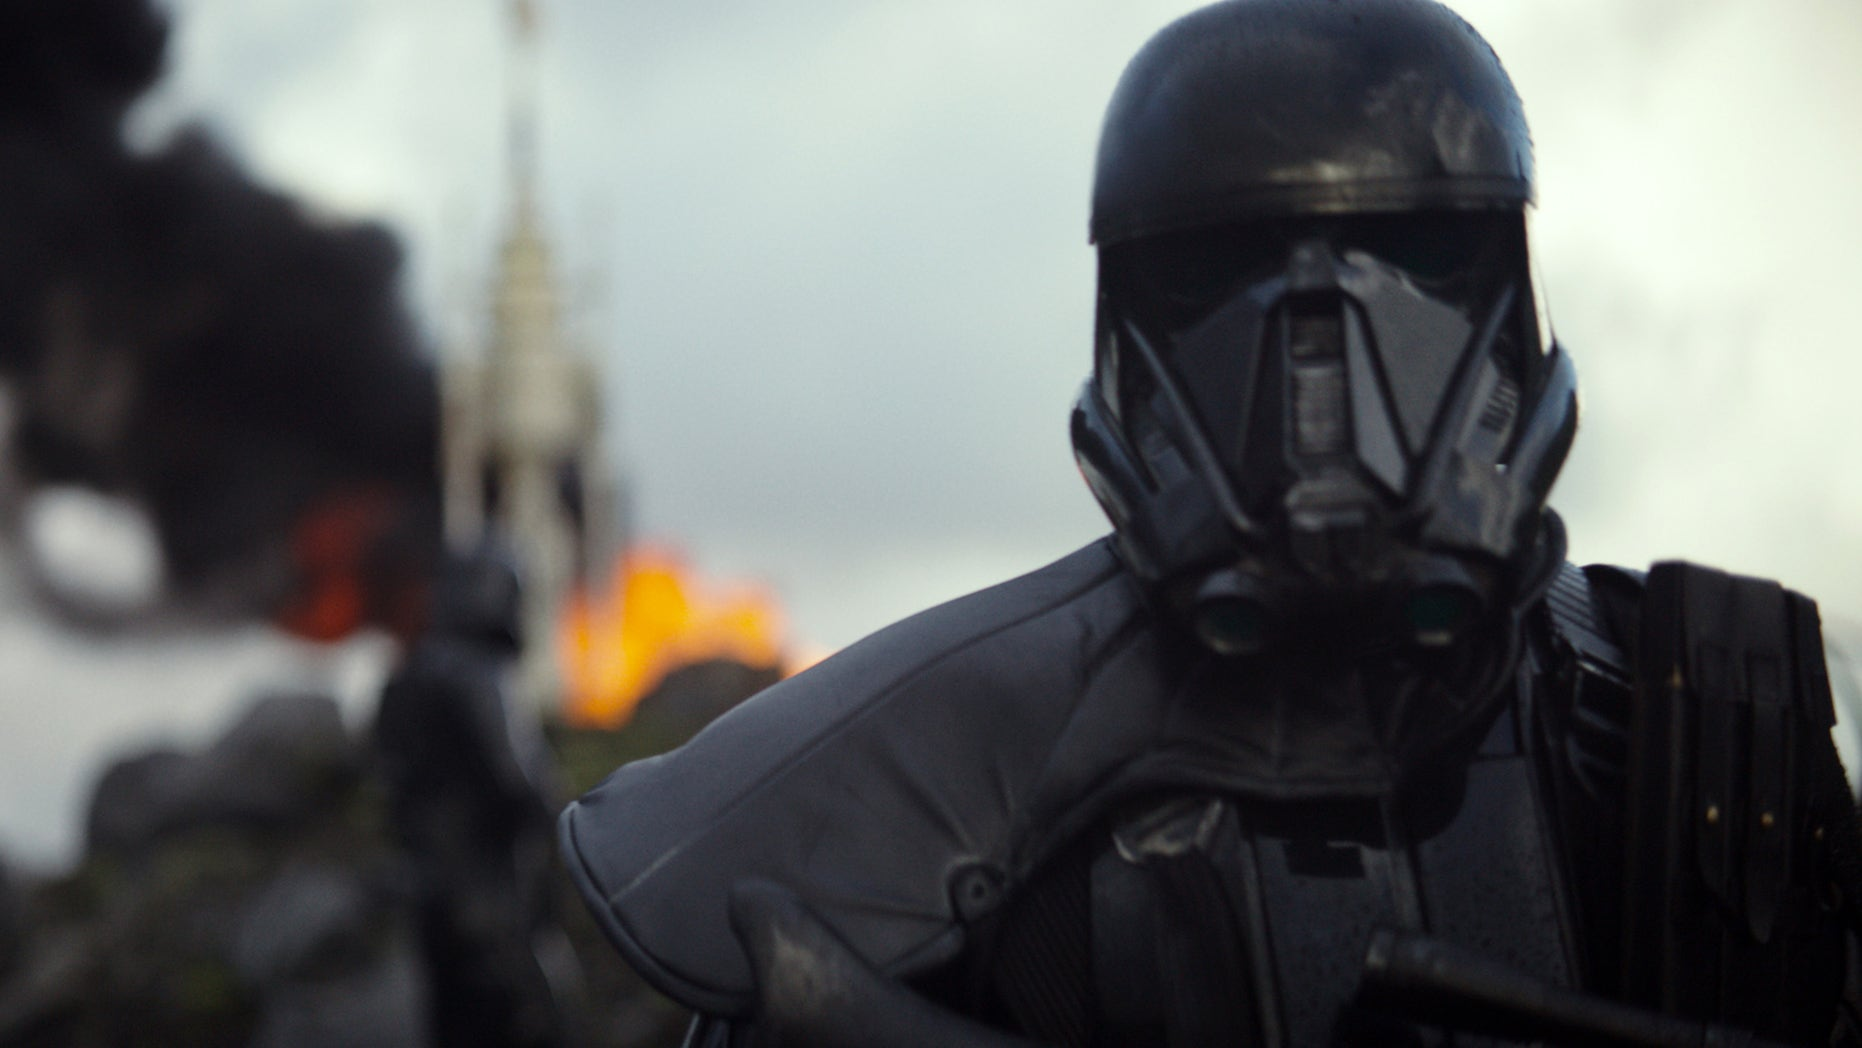 """This image released by Disney shows a scene from the upcoming film, """"Rogue One: A Star Wars Story."""" The world got a glimpse of âRogue One: A Star Wars Storyâ in teaser trailer that debuted Thursday, April 7, 2016 on Good Morning America that introduces the rag tag rebels who unite to steal the plans for the Death Star, including âThe Theory of Everythingâsâ Felicity Jones. The film directed by Gareth Edwards also stars Diego Luna, Forest Whitaker and Ben Mendelsohn. (Disney via AP)"""